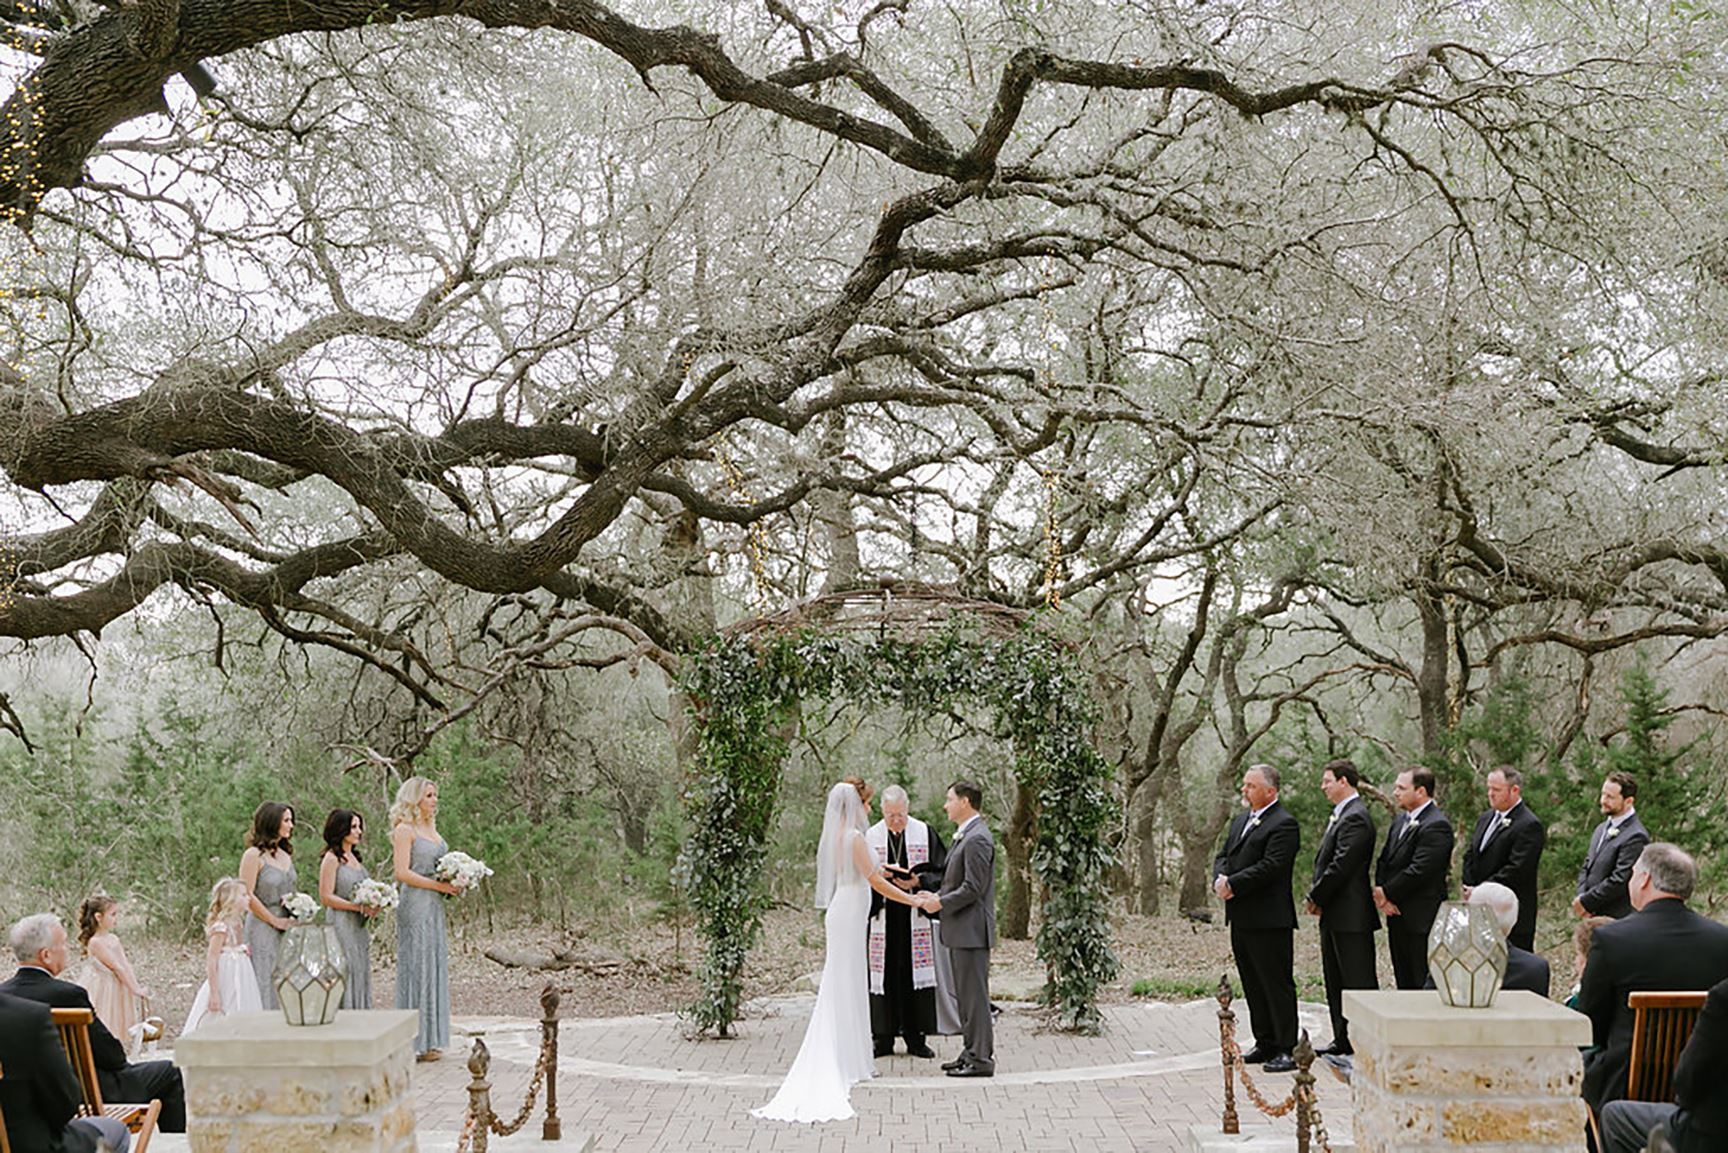 A couple getting married beneath an oak tree.